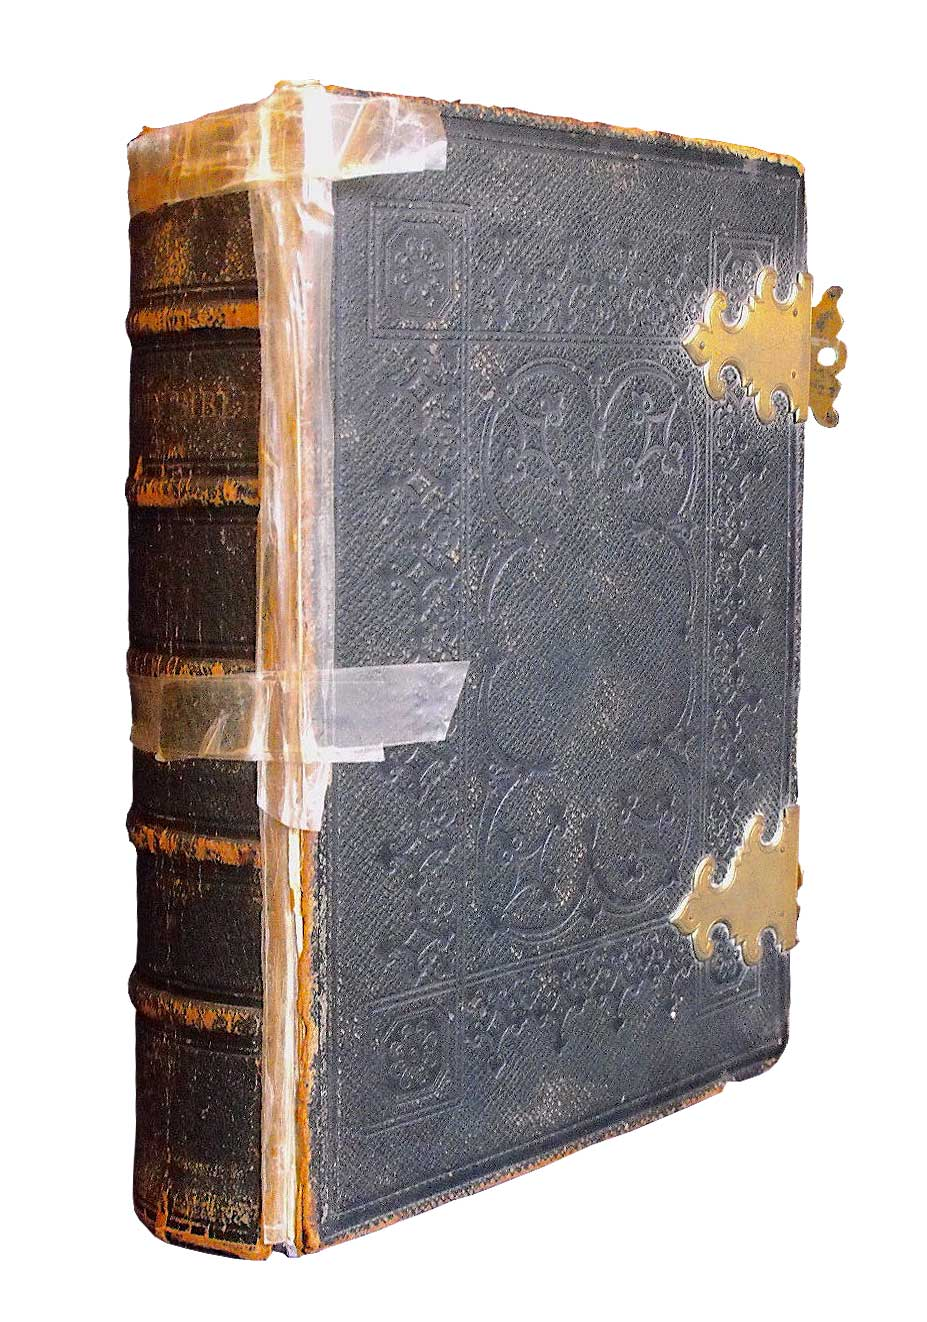 Damaged Bible common problems - Bible Repair Sussex Book Resoration